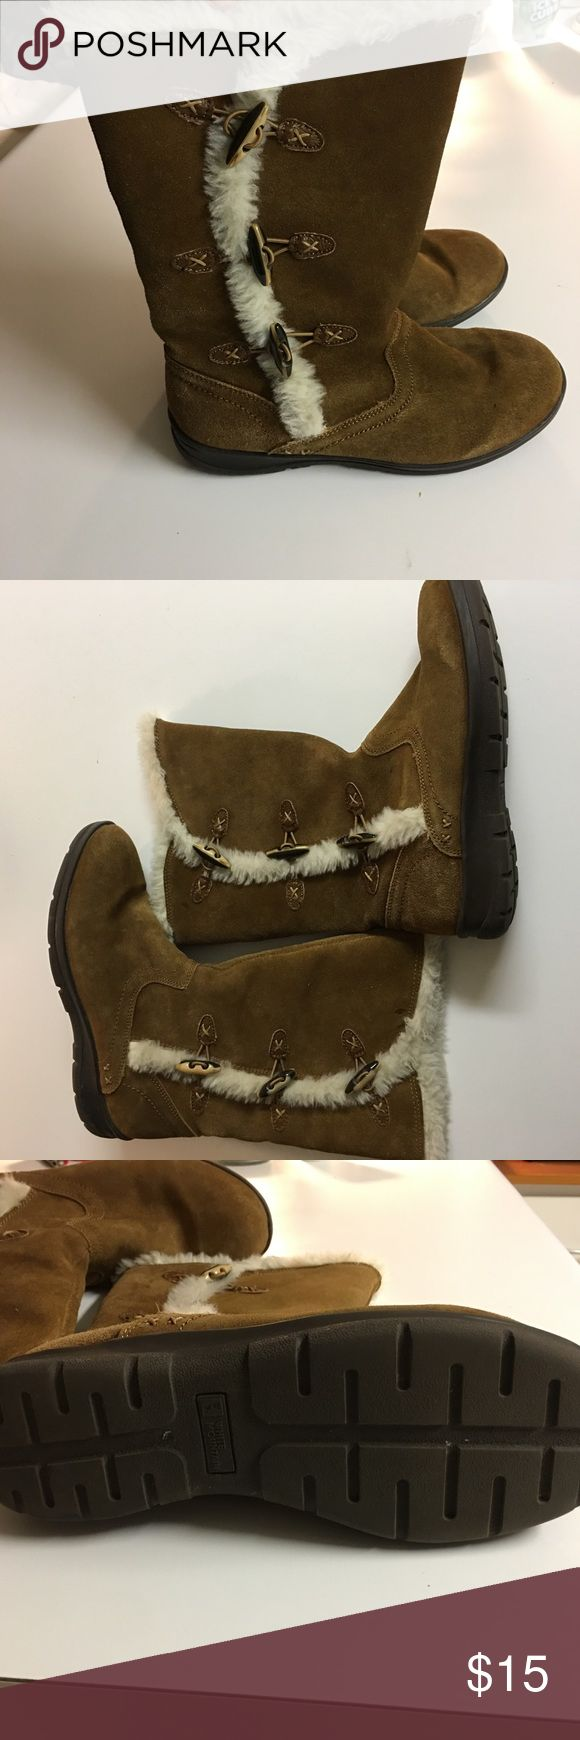 White Mountain Brown Suede Boots The item you are considering is a pair of brown suede boots. Women's size 9 1/2, leather upper, balance man made. Excellent condition! White Mountain  Shoes Winter & Rain Boots